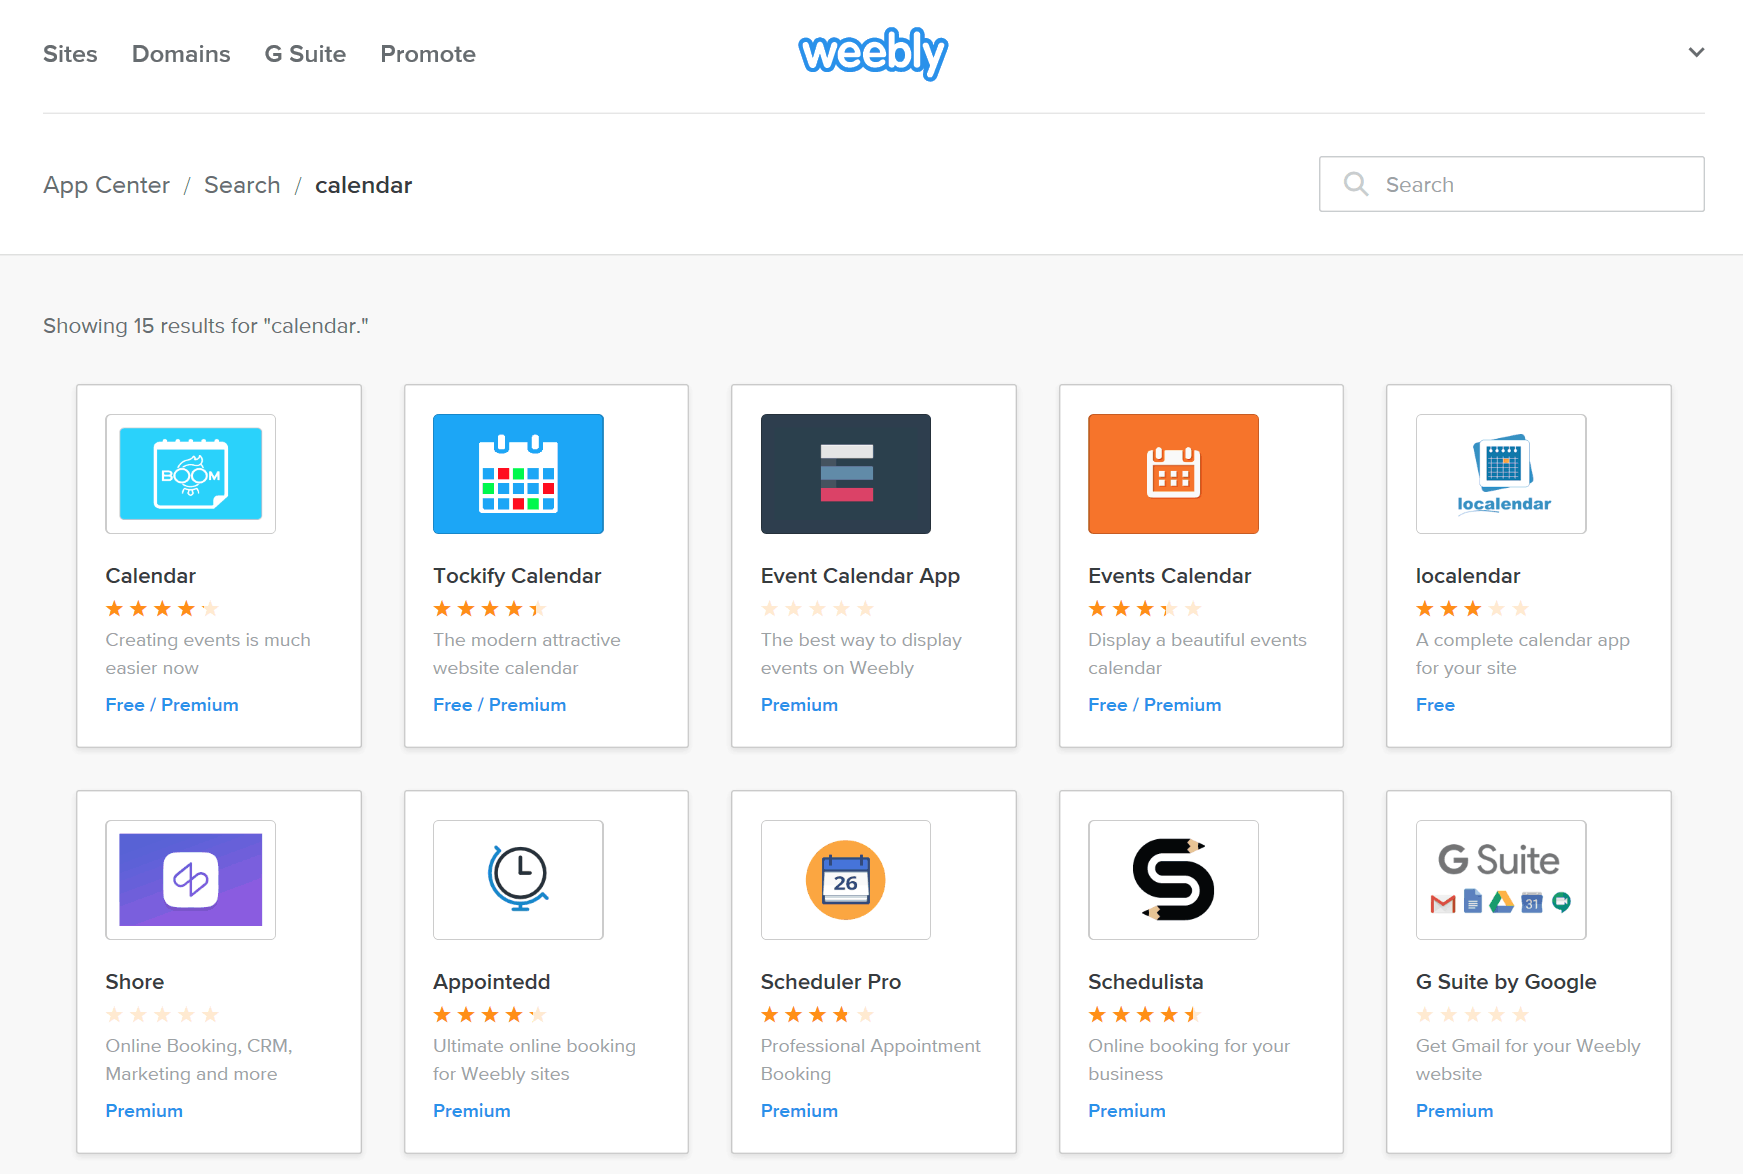 Weebly screenshot - Calendar apps in the App Center